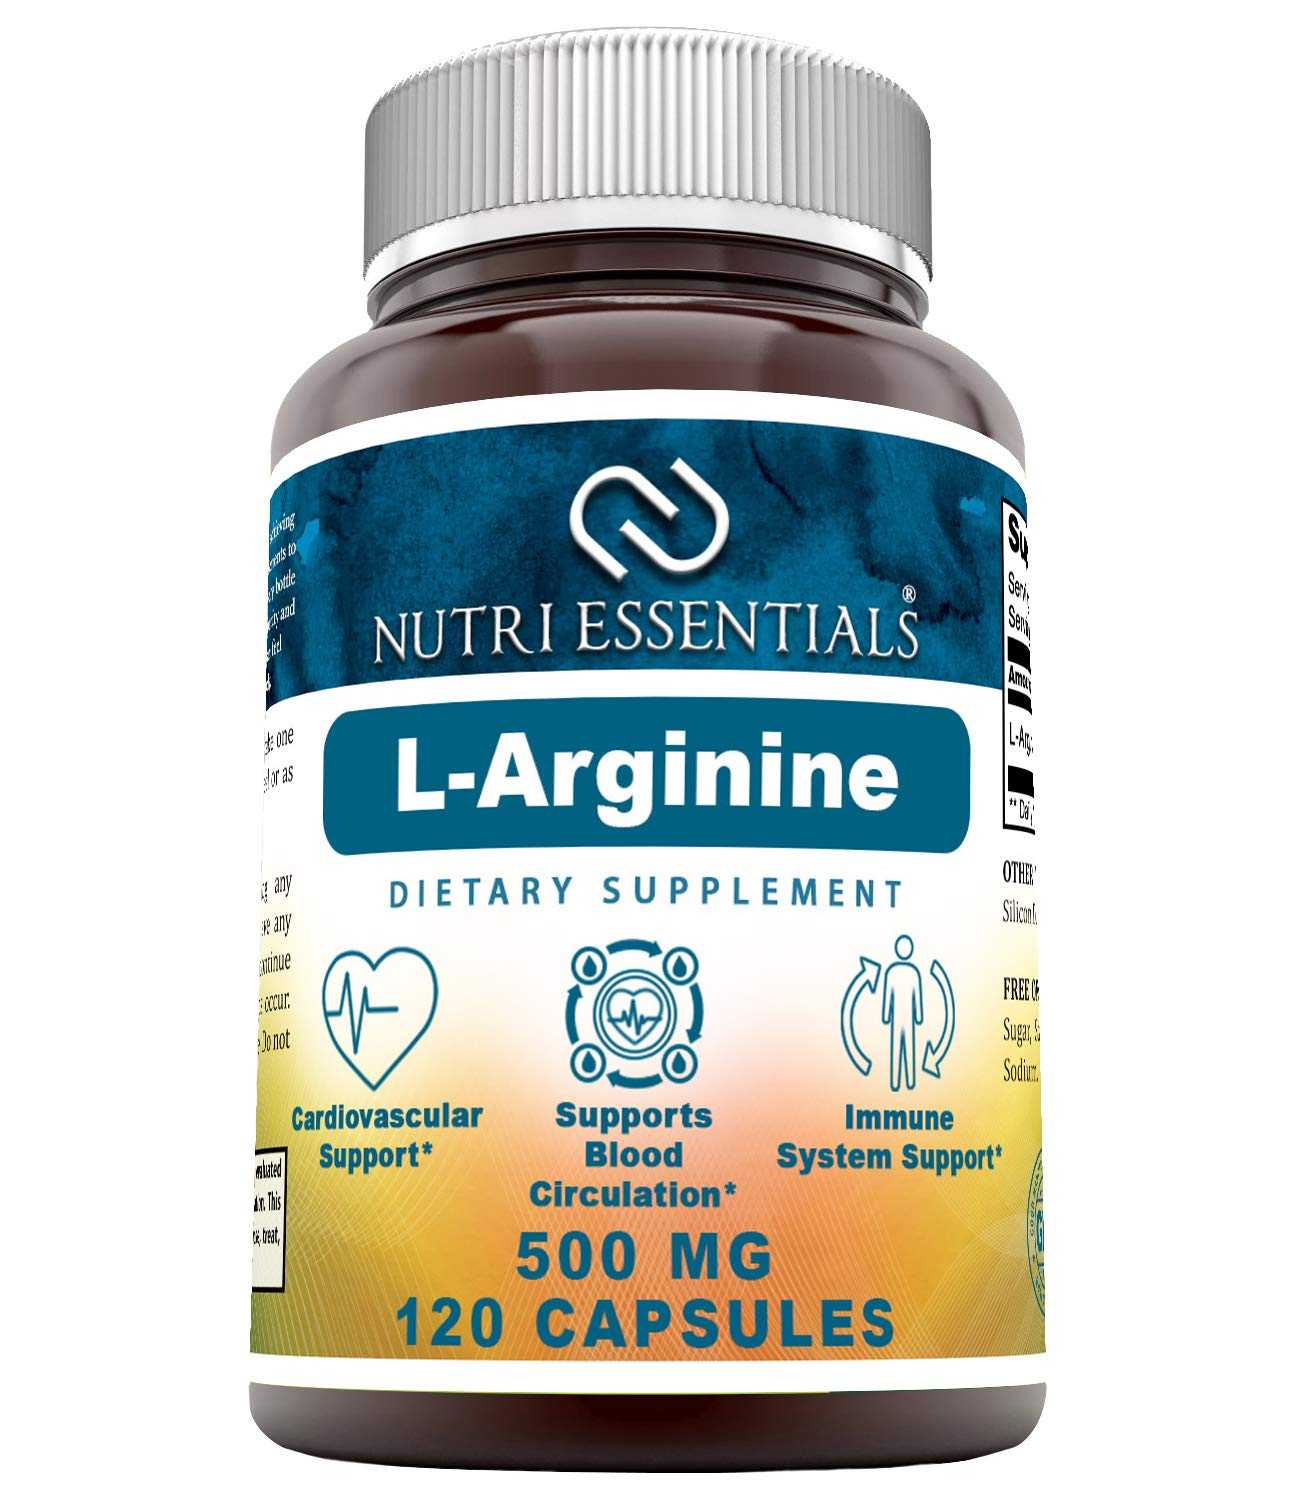 Nutri Essentials L-Arginine 500 mg 120 Capsules (Non-GMO) Supplement - Best Amino Acid Arginine HCL Supplements for…